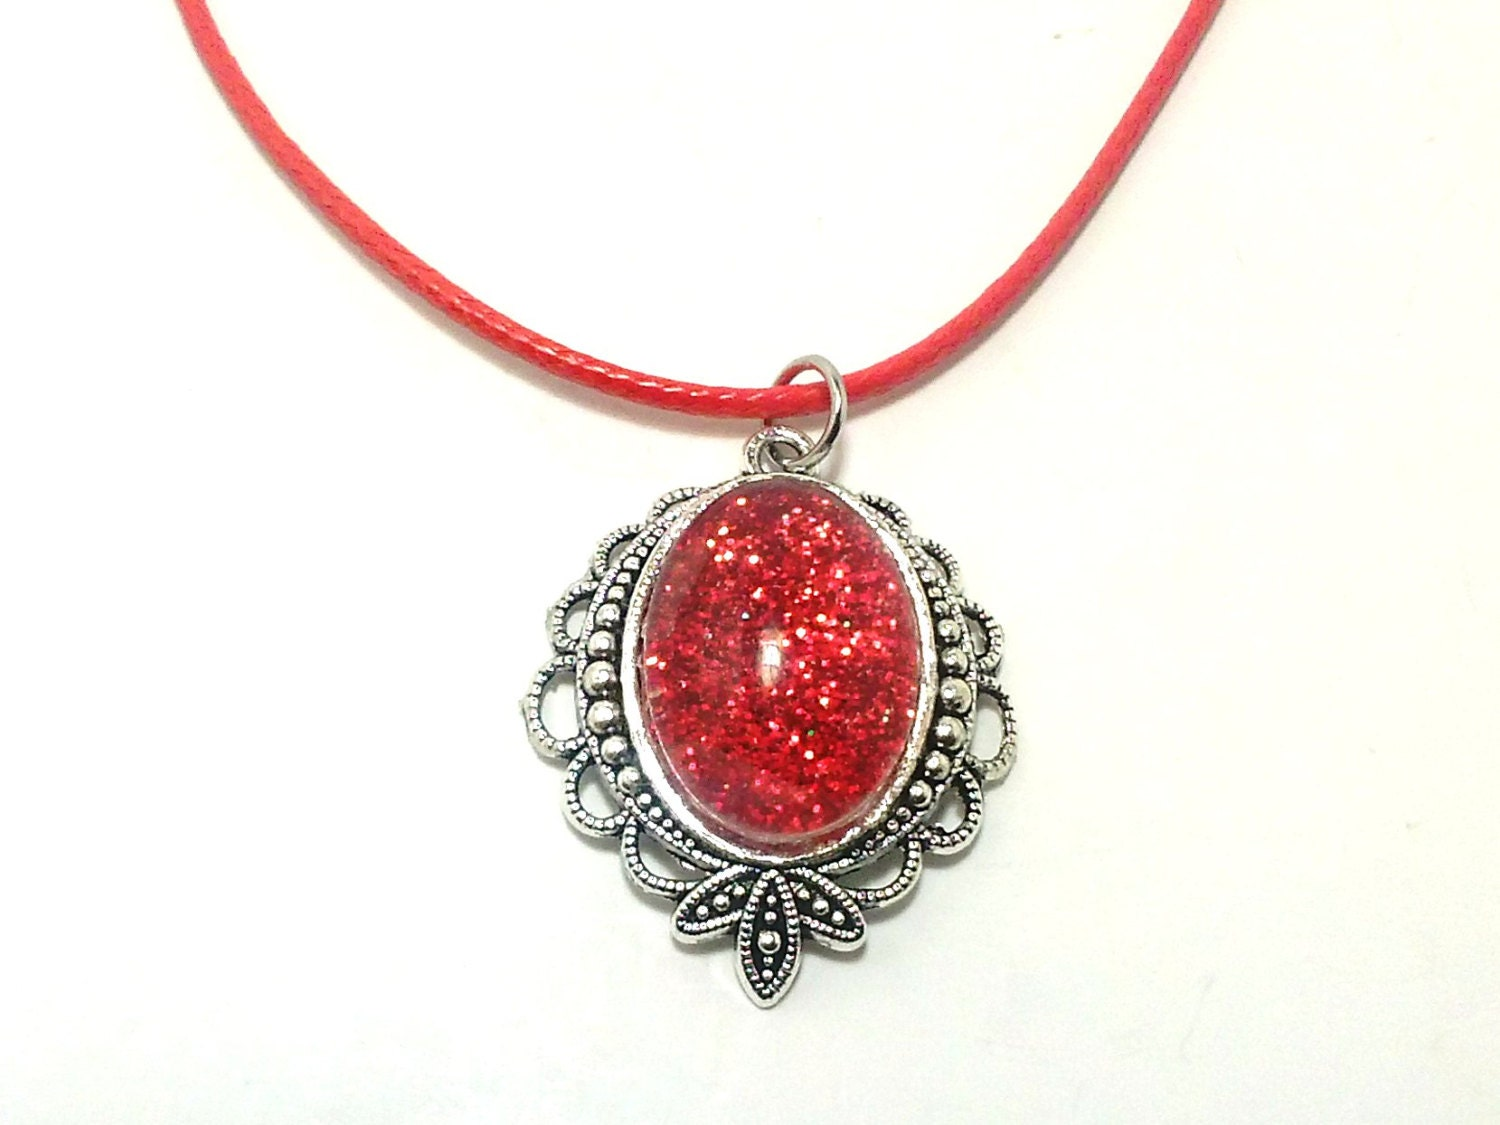 SALE Red Glitter Necklace Fashion Jewelry Teen Gifts